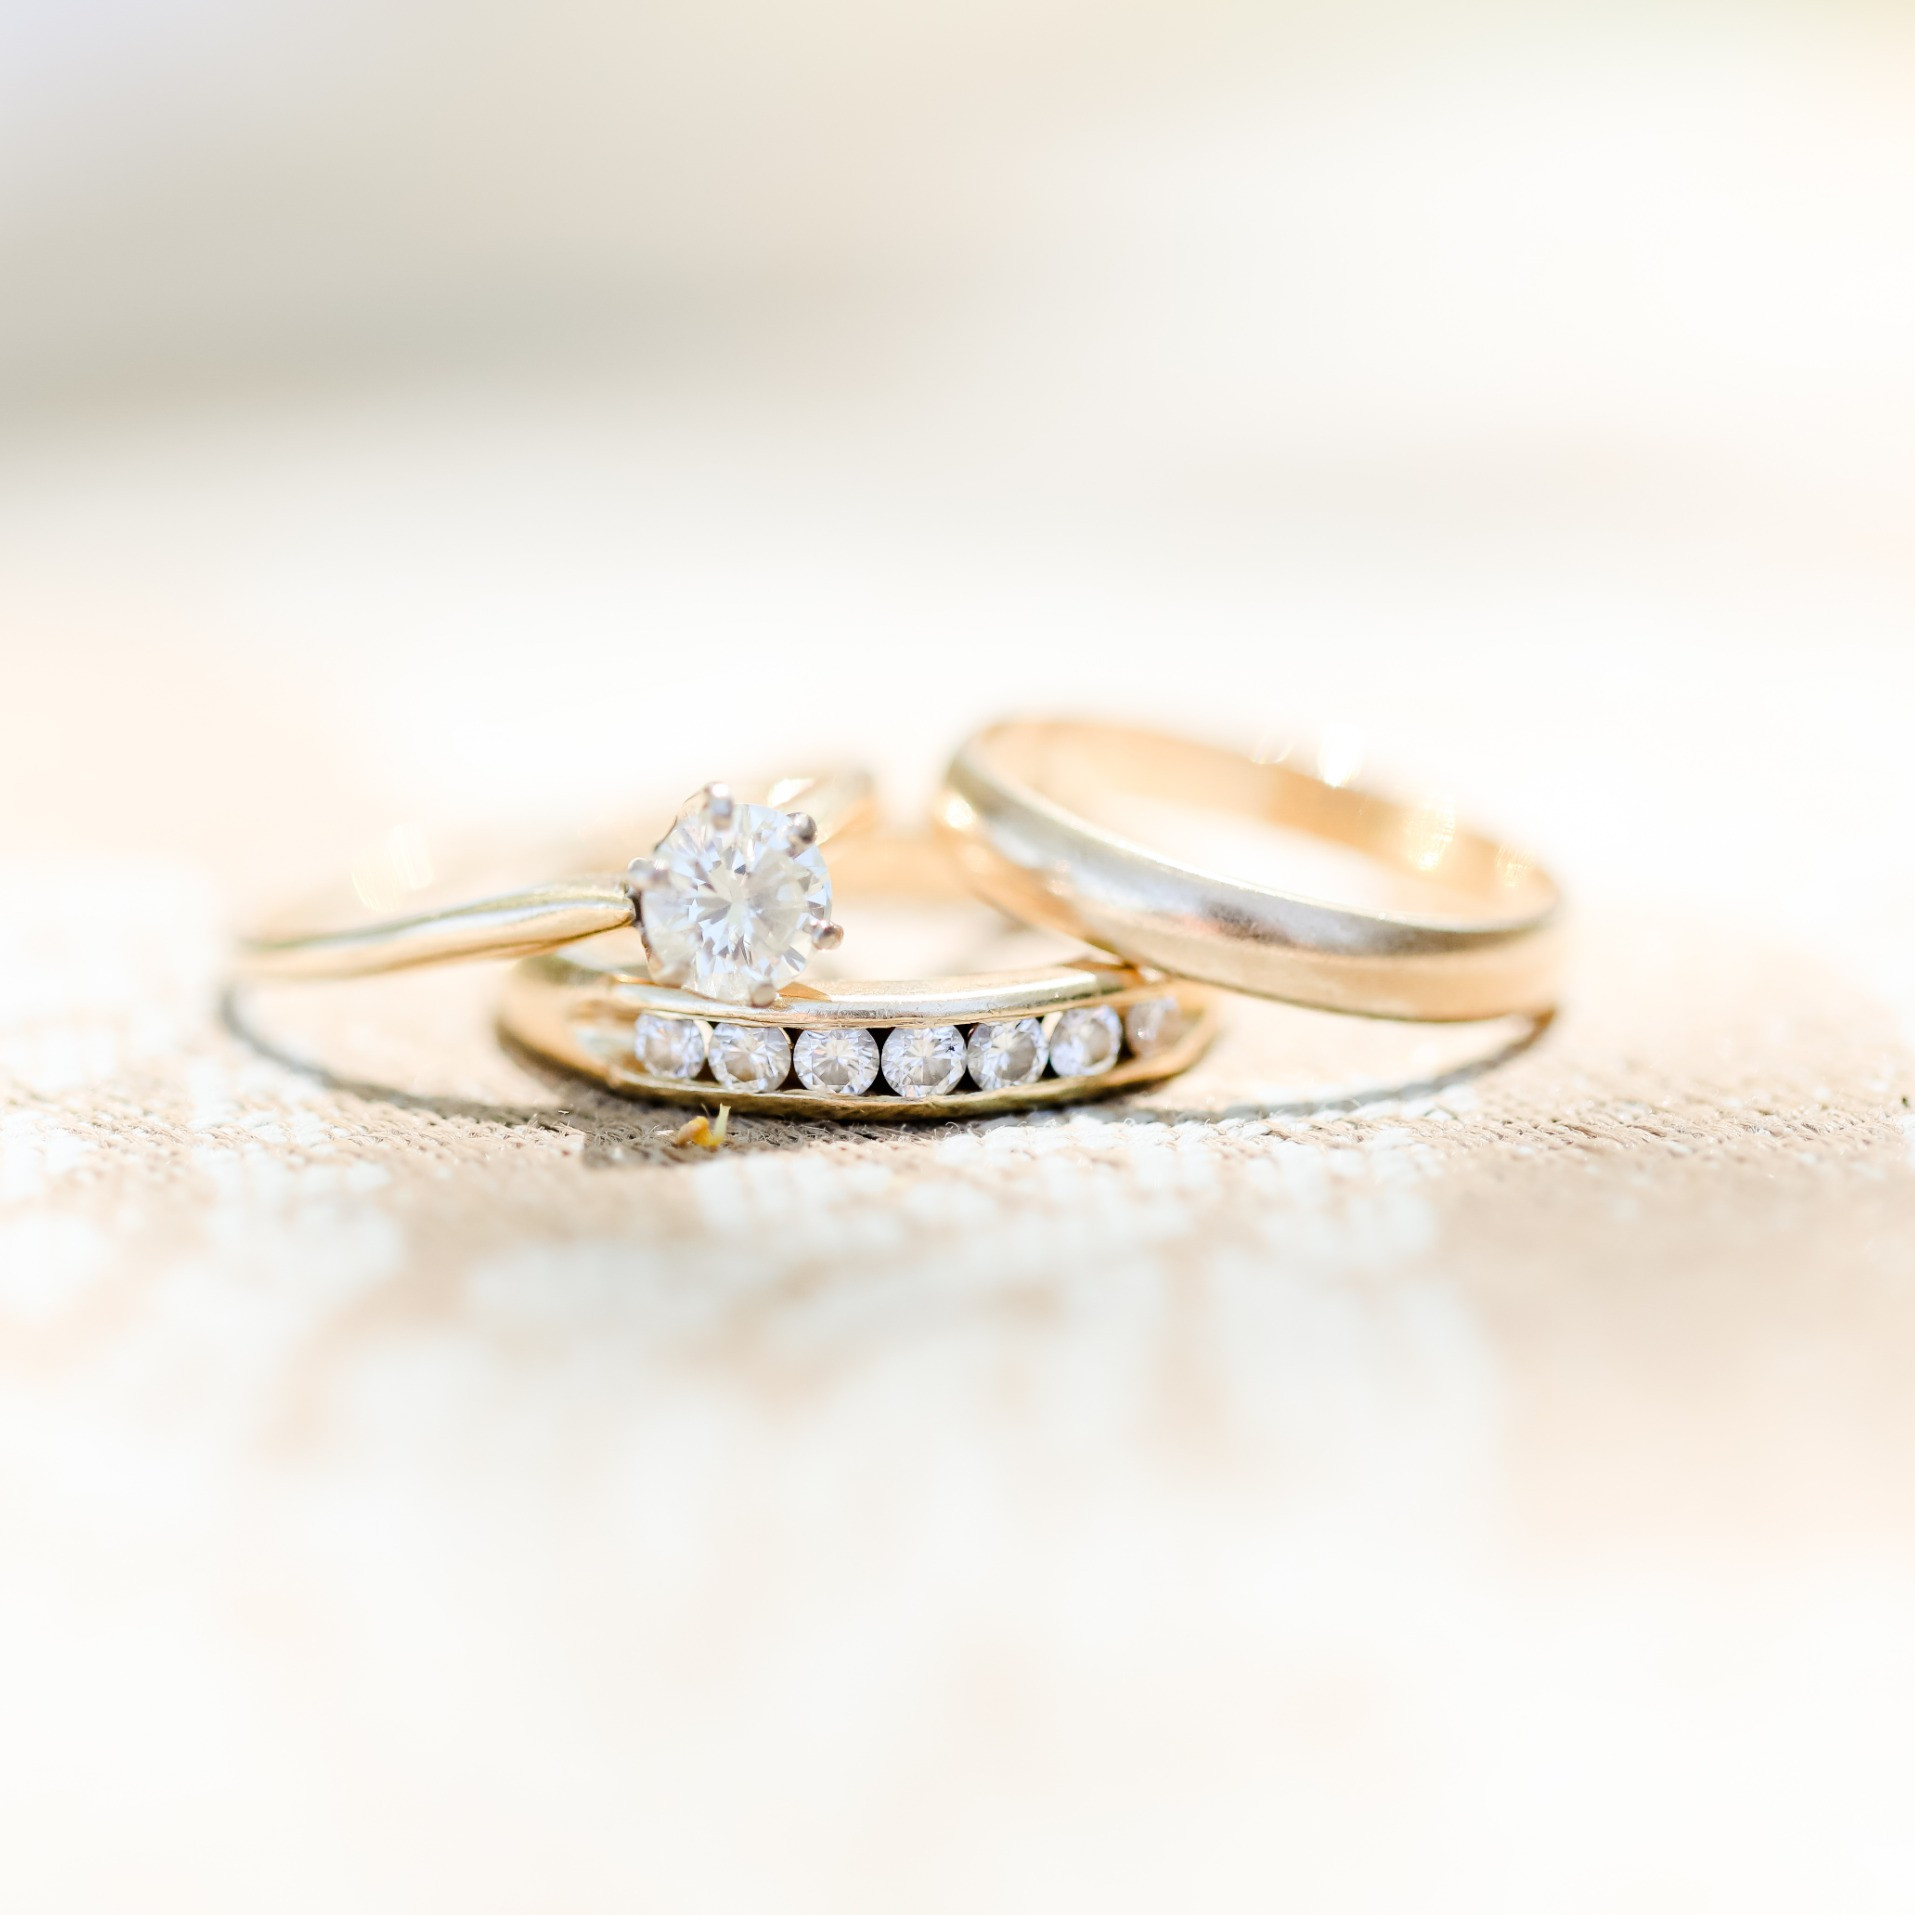 Wedding Consultation After Booking